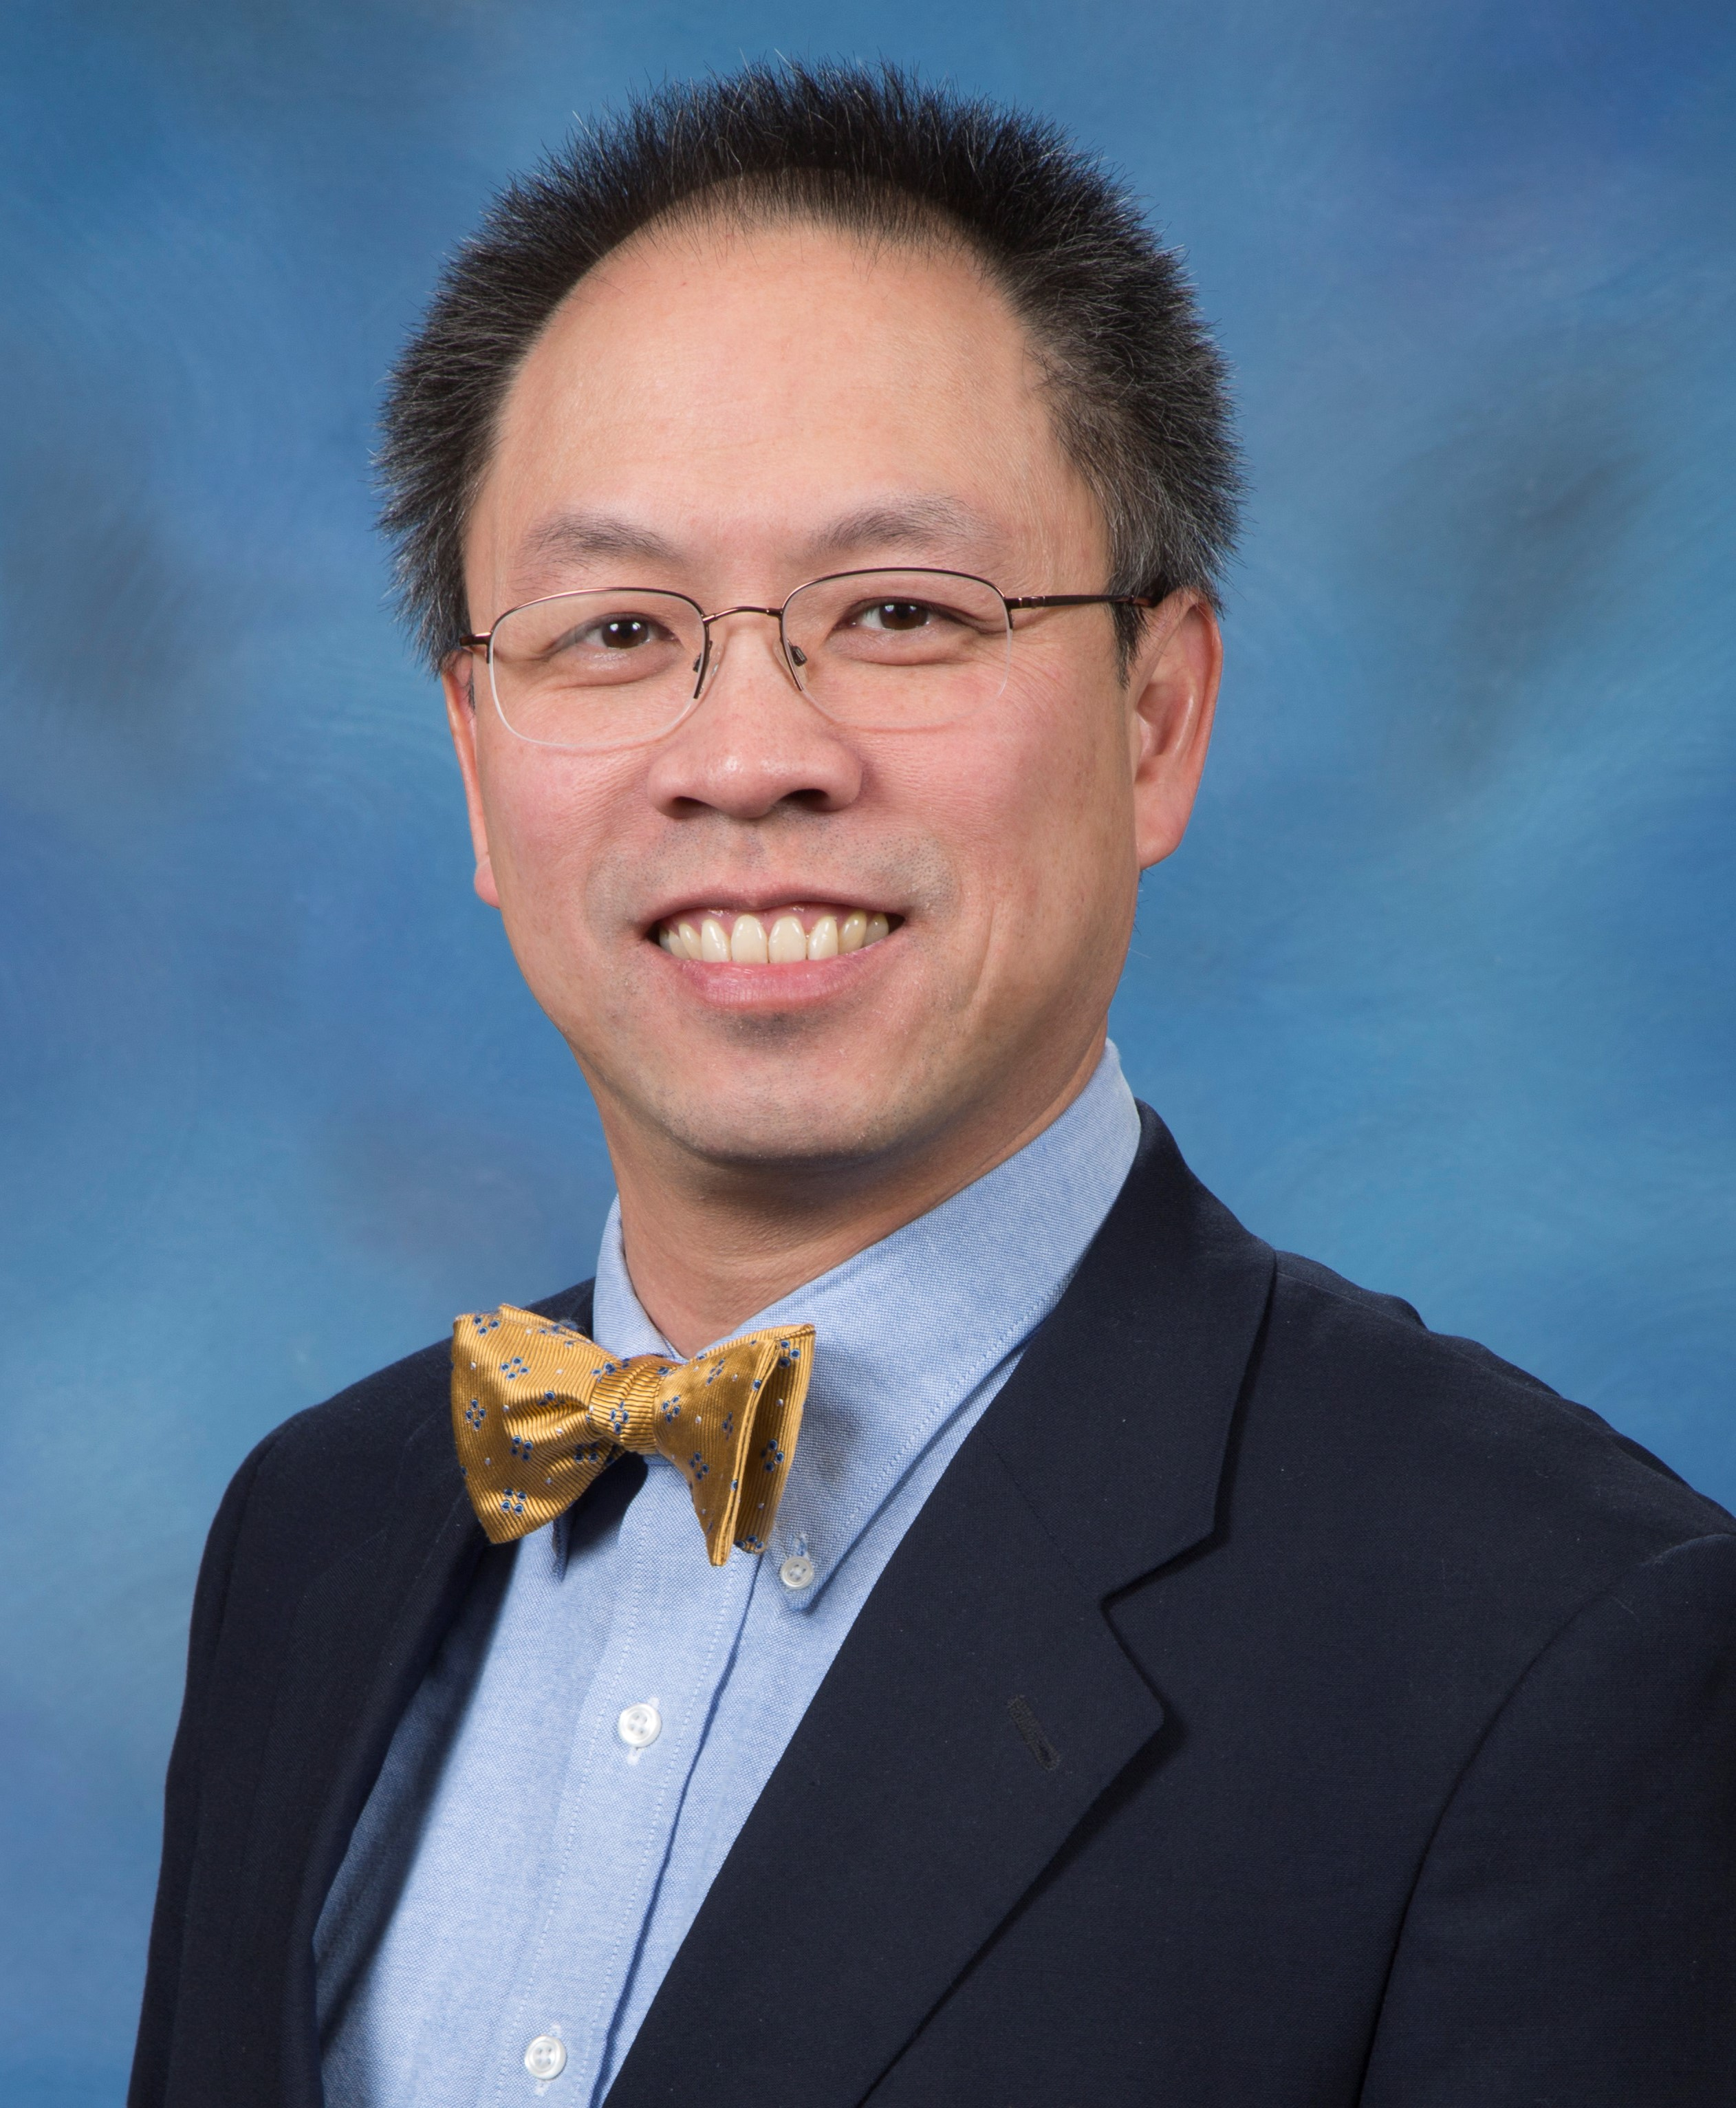 Dr. Mark Fung